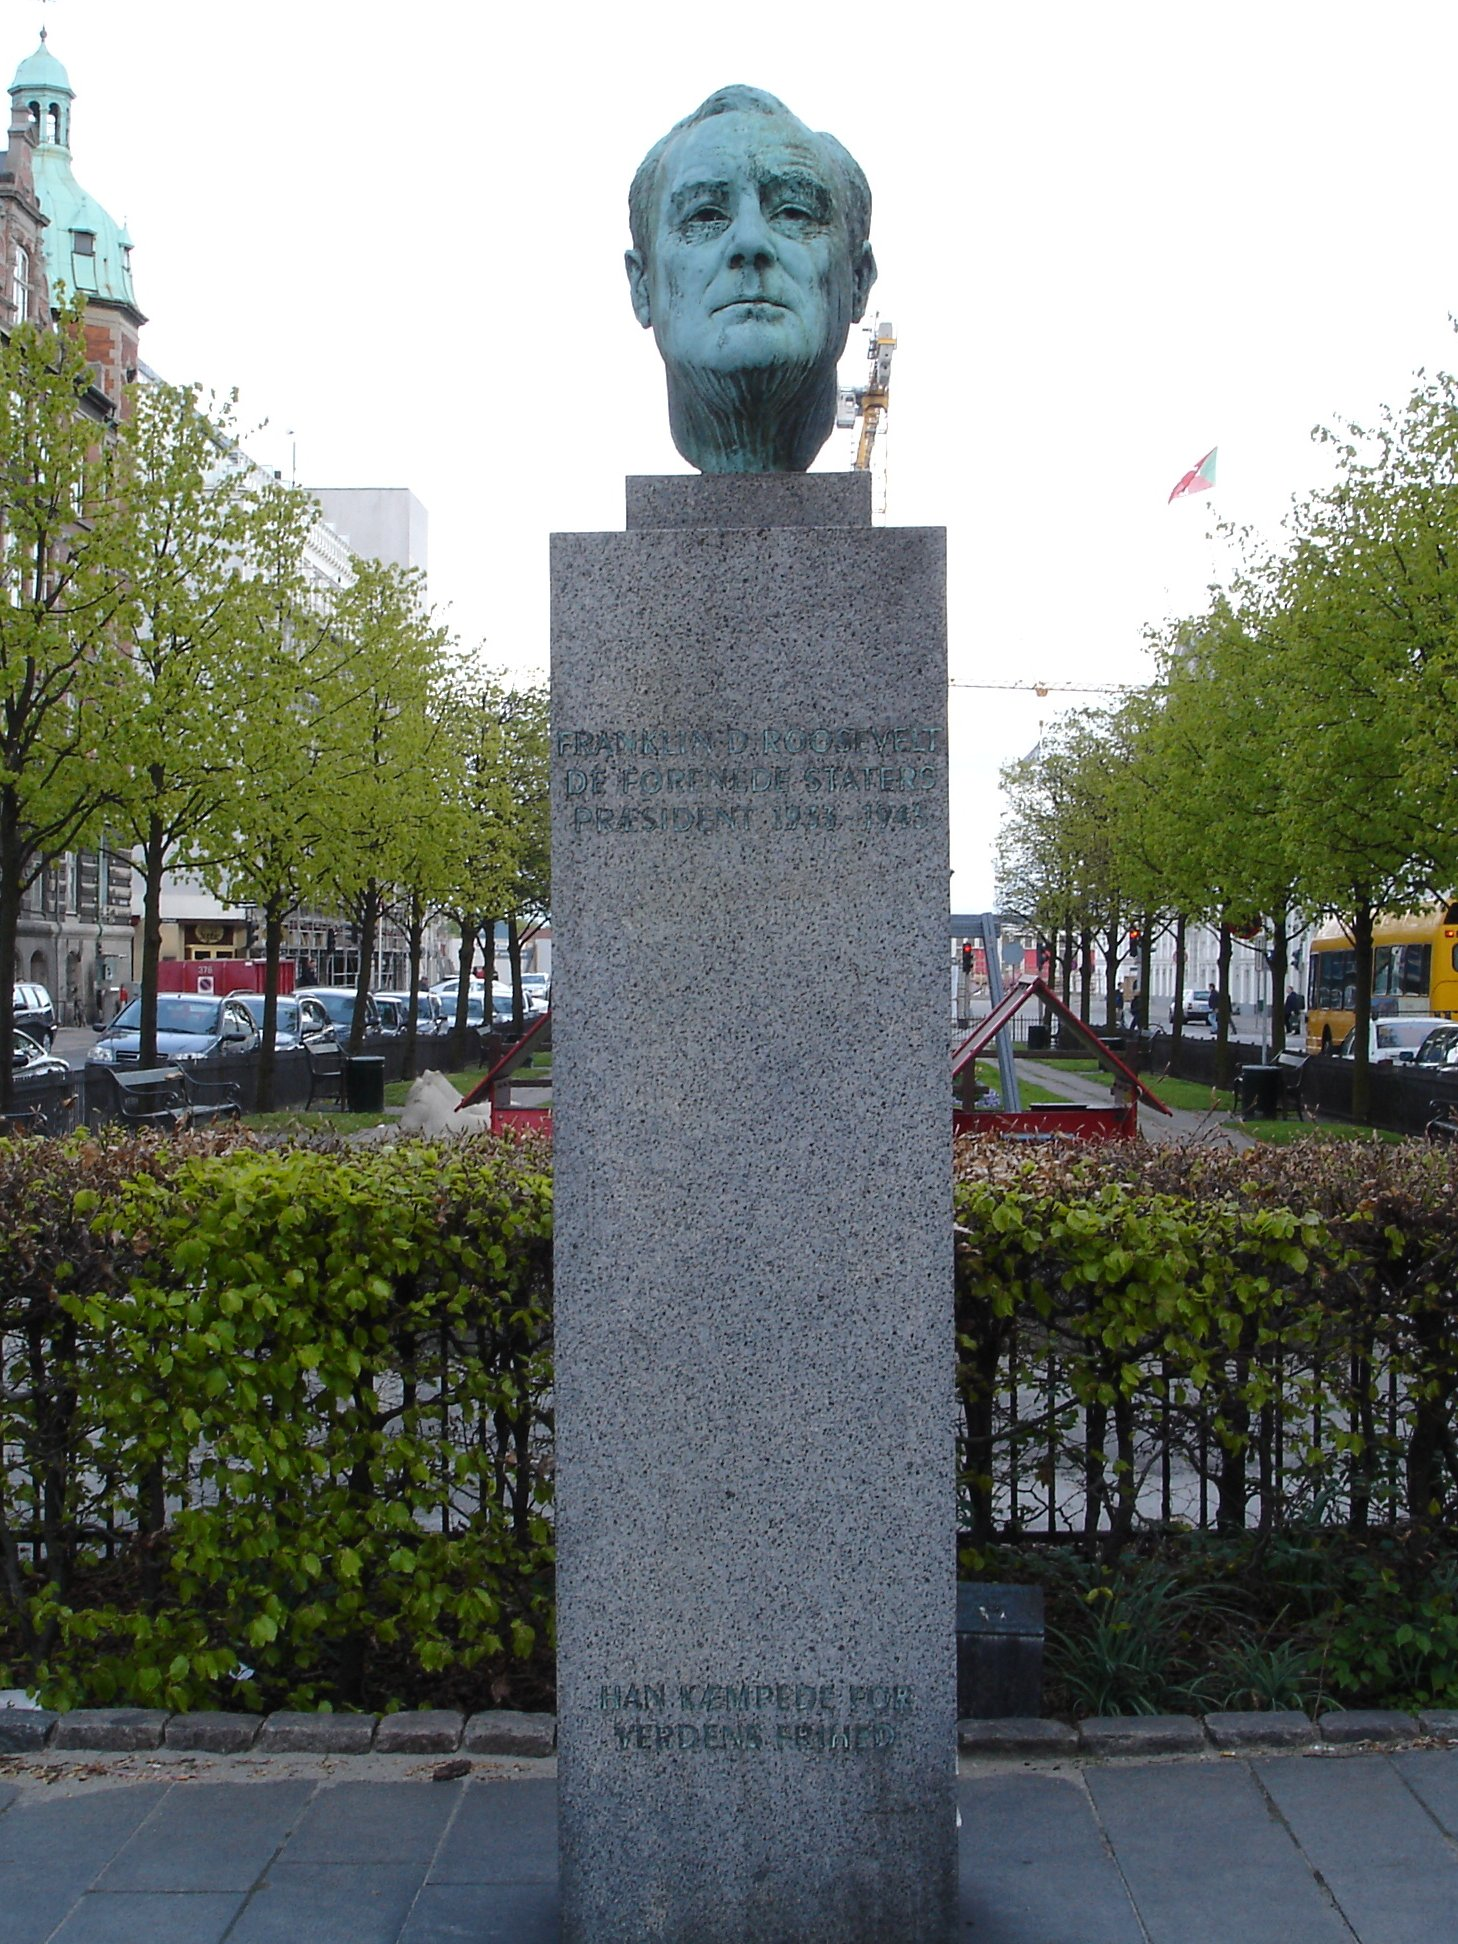 http://upload.wikimedia.org/wikipedia/commons/6/66/Franklin_D_Roosevelt_Copenhagen.jpg